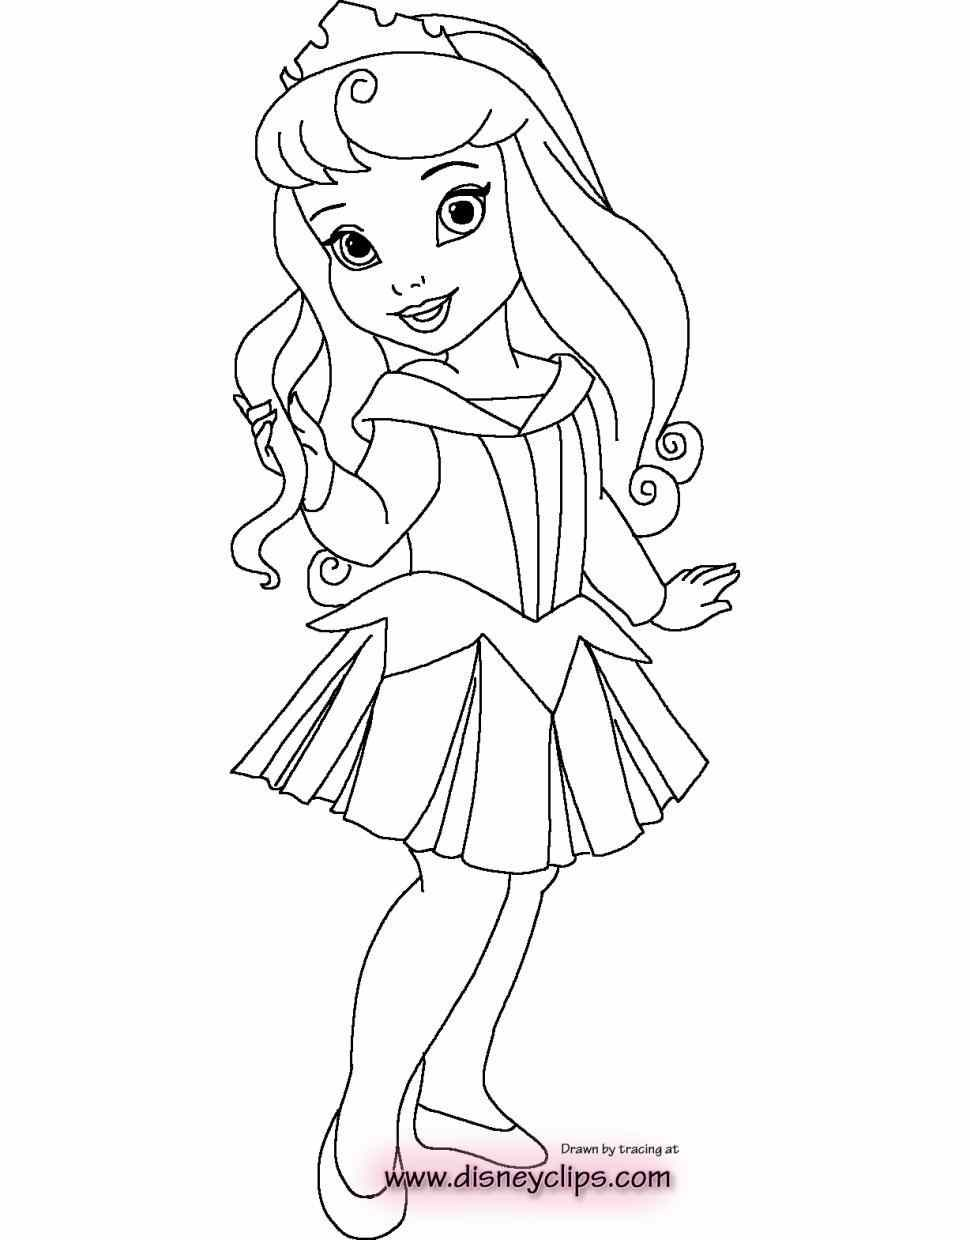 Pioneering Baby Princess Coloring Pages Disney 4 17289 For Baby Princess Coloring Disney Princess Coloring Pages Disney Princess Colors Mermaid Coloring Pages